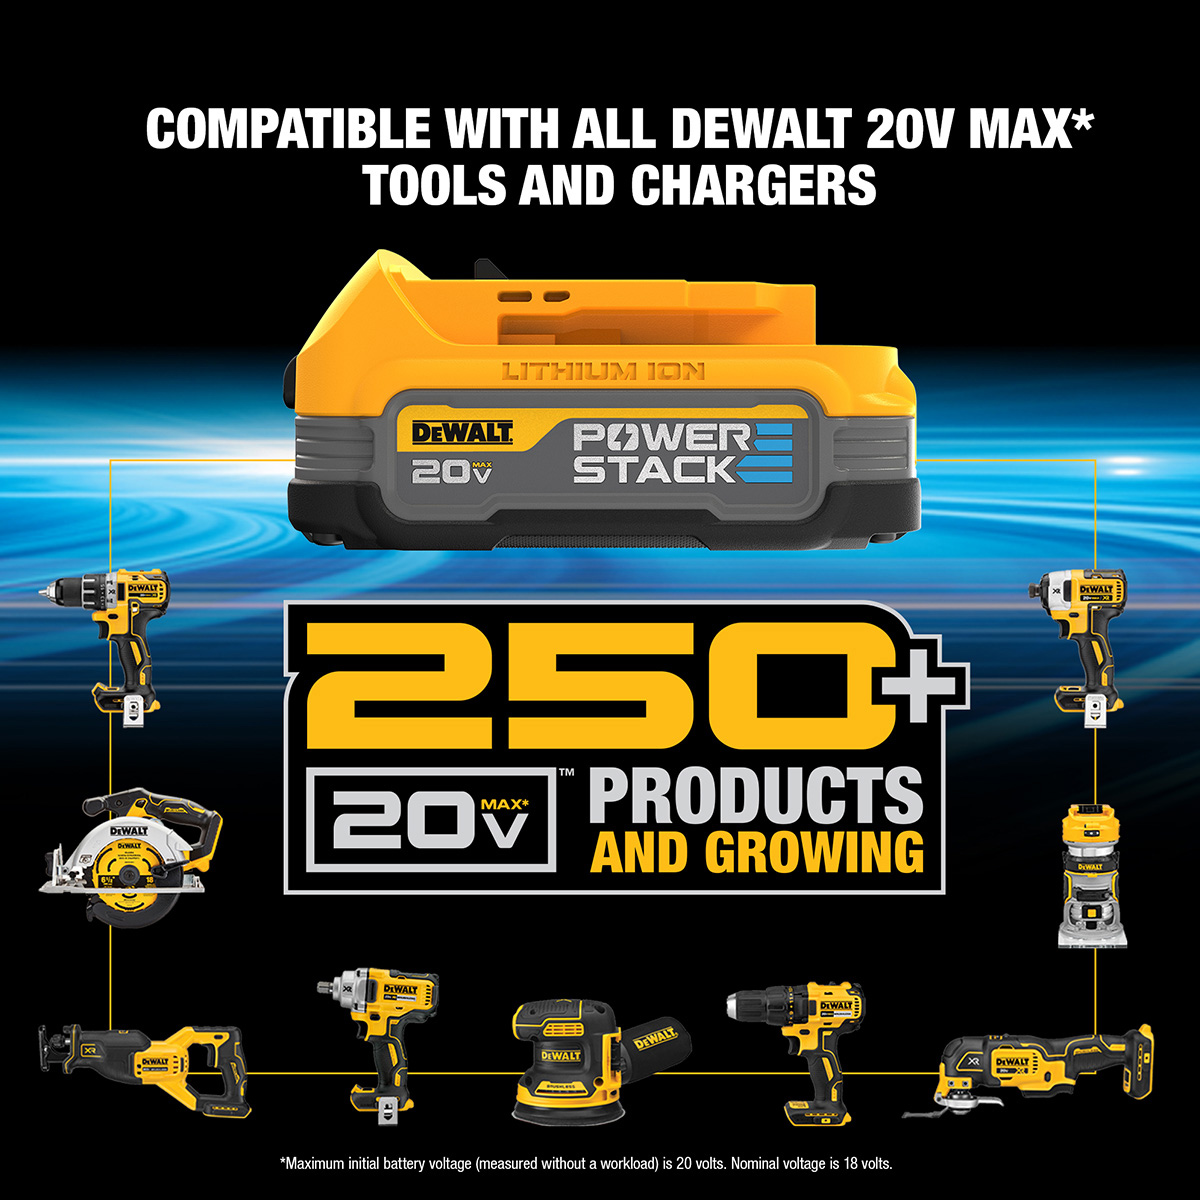 Compatible with all DEWALT 20V MAX* Tools and Chargers